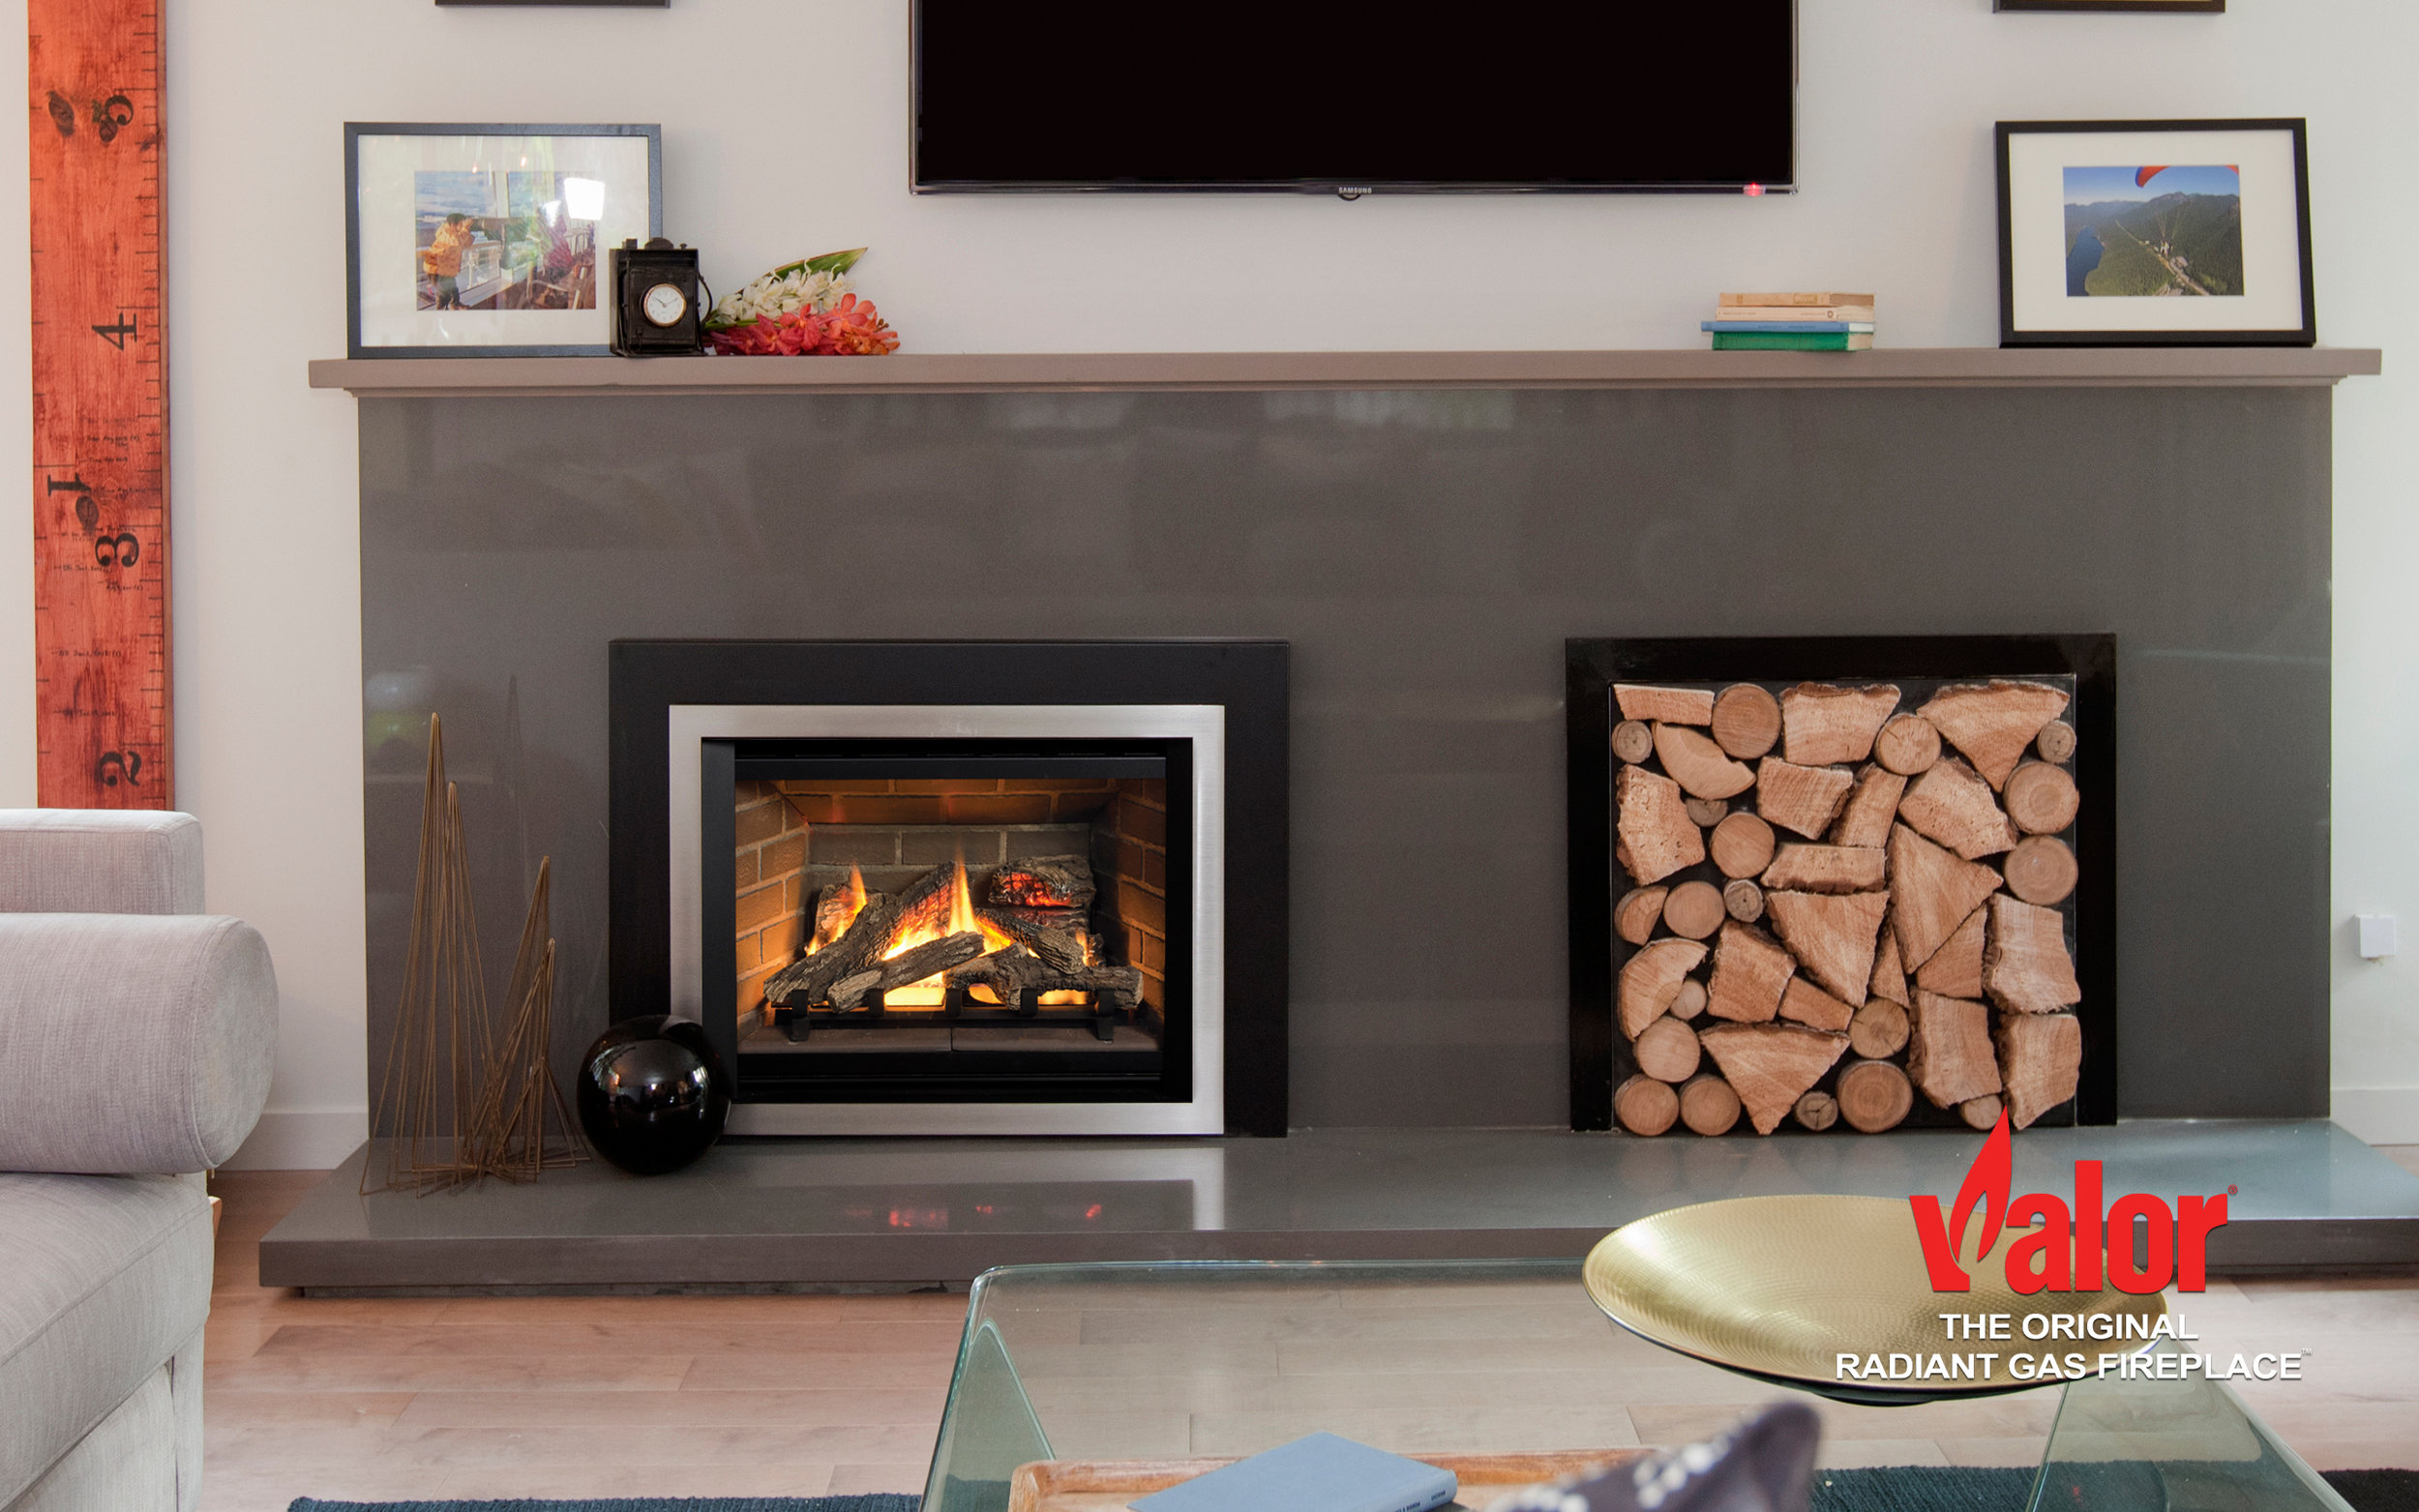 With over two decades of design innovation and four generations of Legend gas insert DNA, it's no surprise that the Legend G3.5 exudes radiance, high efficiency and the ultimate in comfort control. A collection of contemporary trims frame an impressive viewing area, highlighting warm, glowing flames within. Fireplace surrounds include both 3 and 4-sided designs, providing flexible installation options and visual updates to your existing hearth.